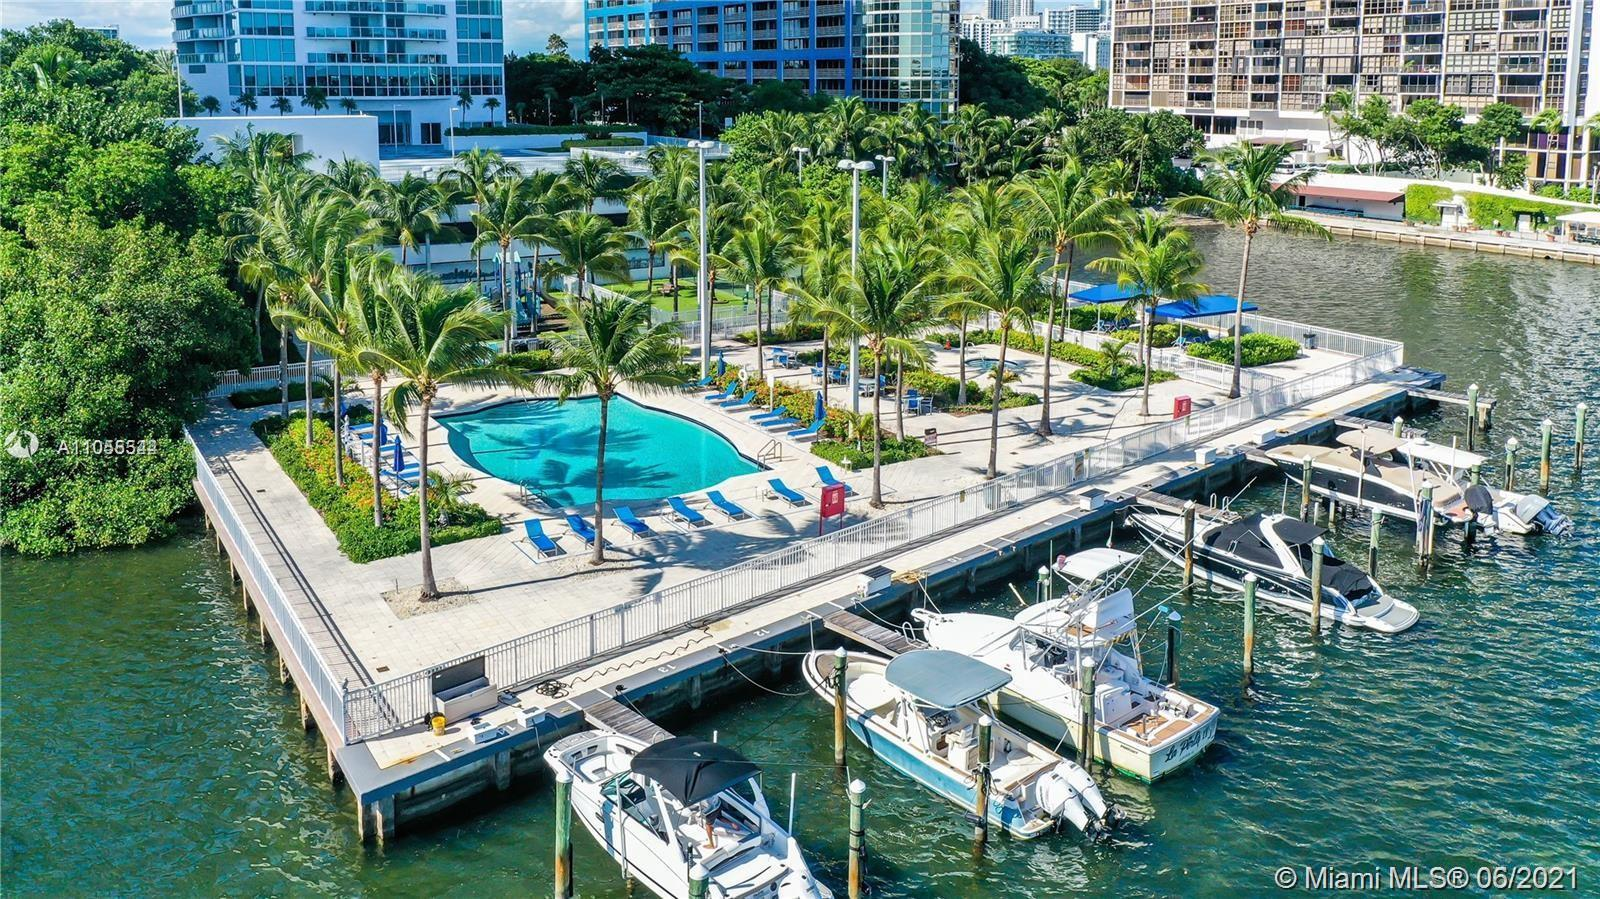 Breathtaking intracoastal view! Large balcony to enjoy the view with your morning coffee. This 2 bed